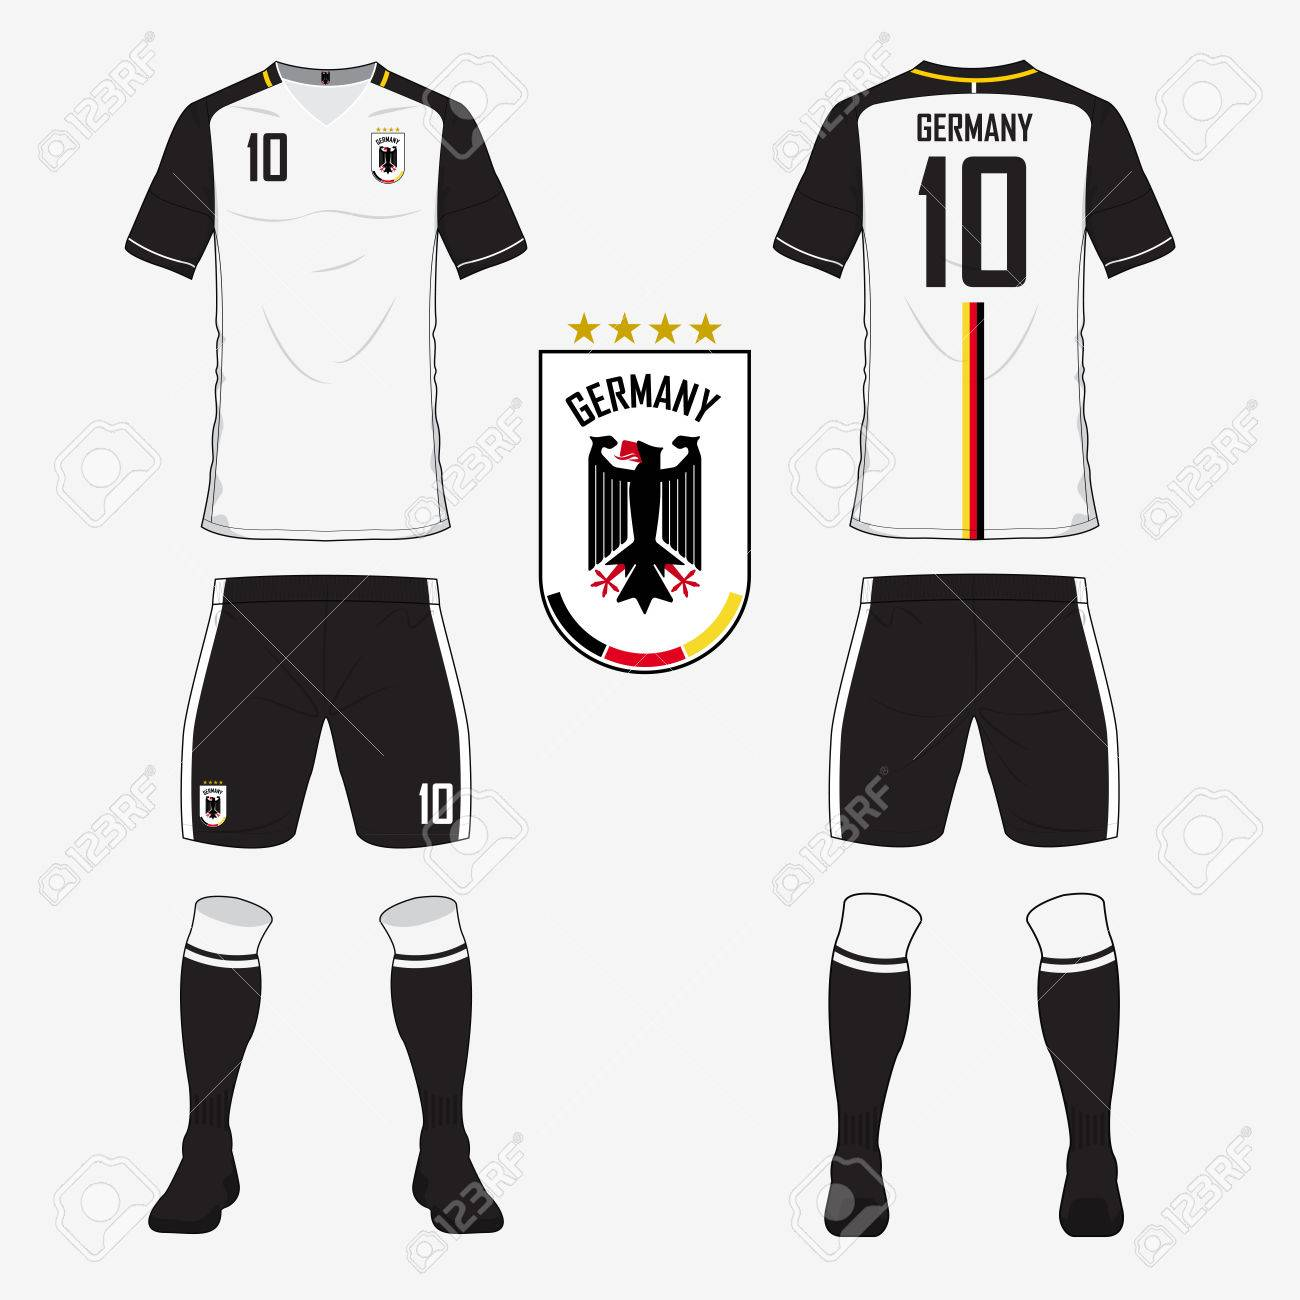 48cbe34a0 Set of soccer jersey or football kit template for Germany national football  team. Front and